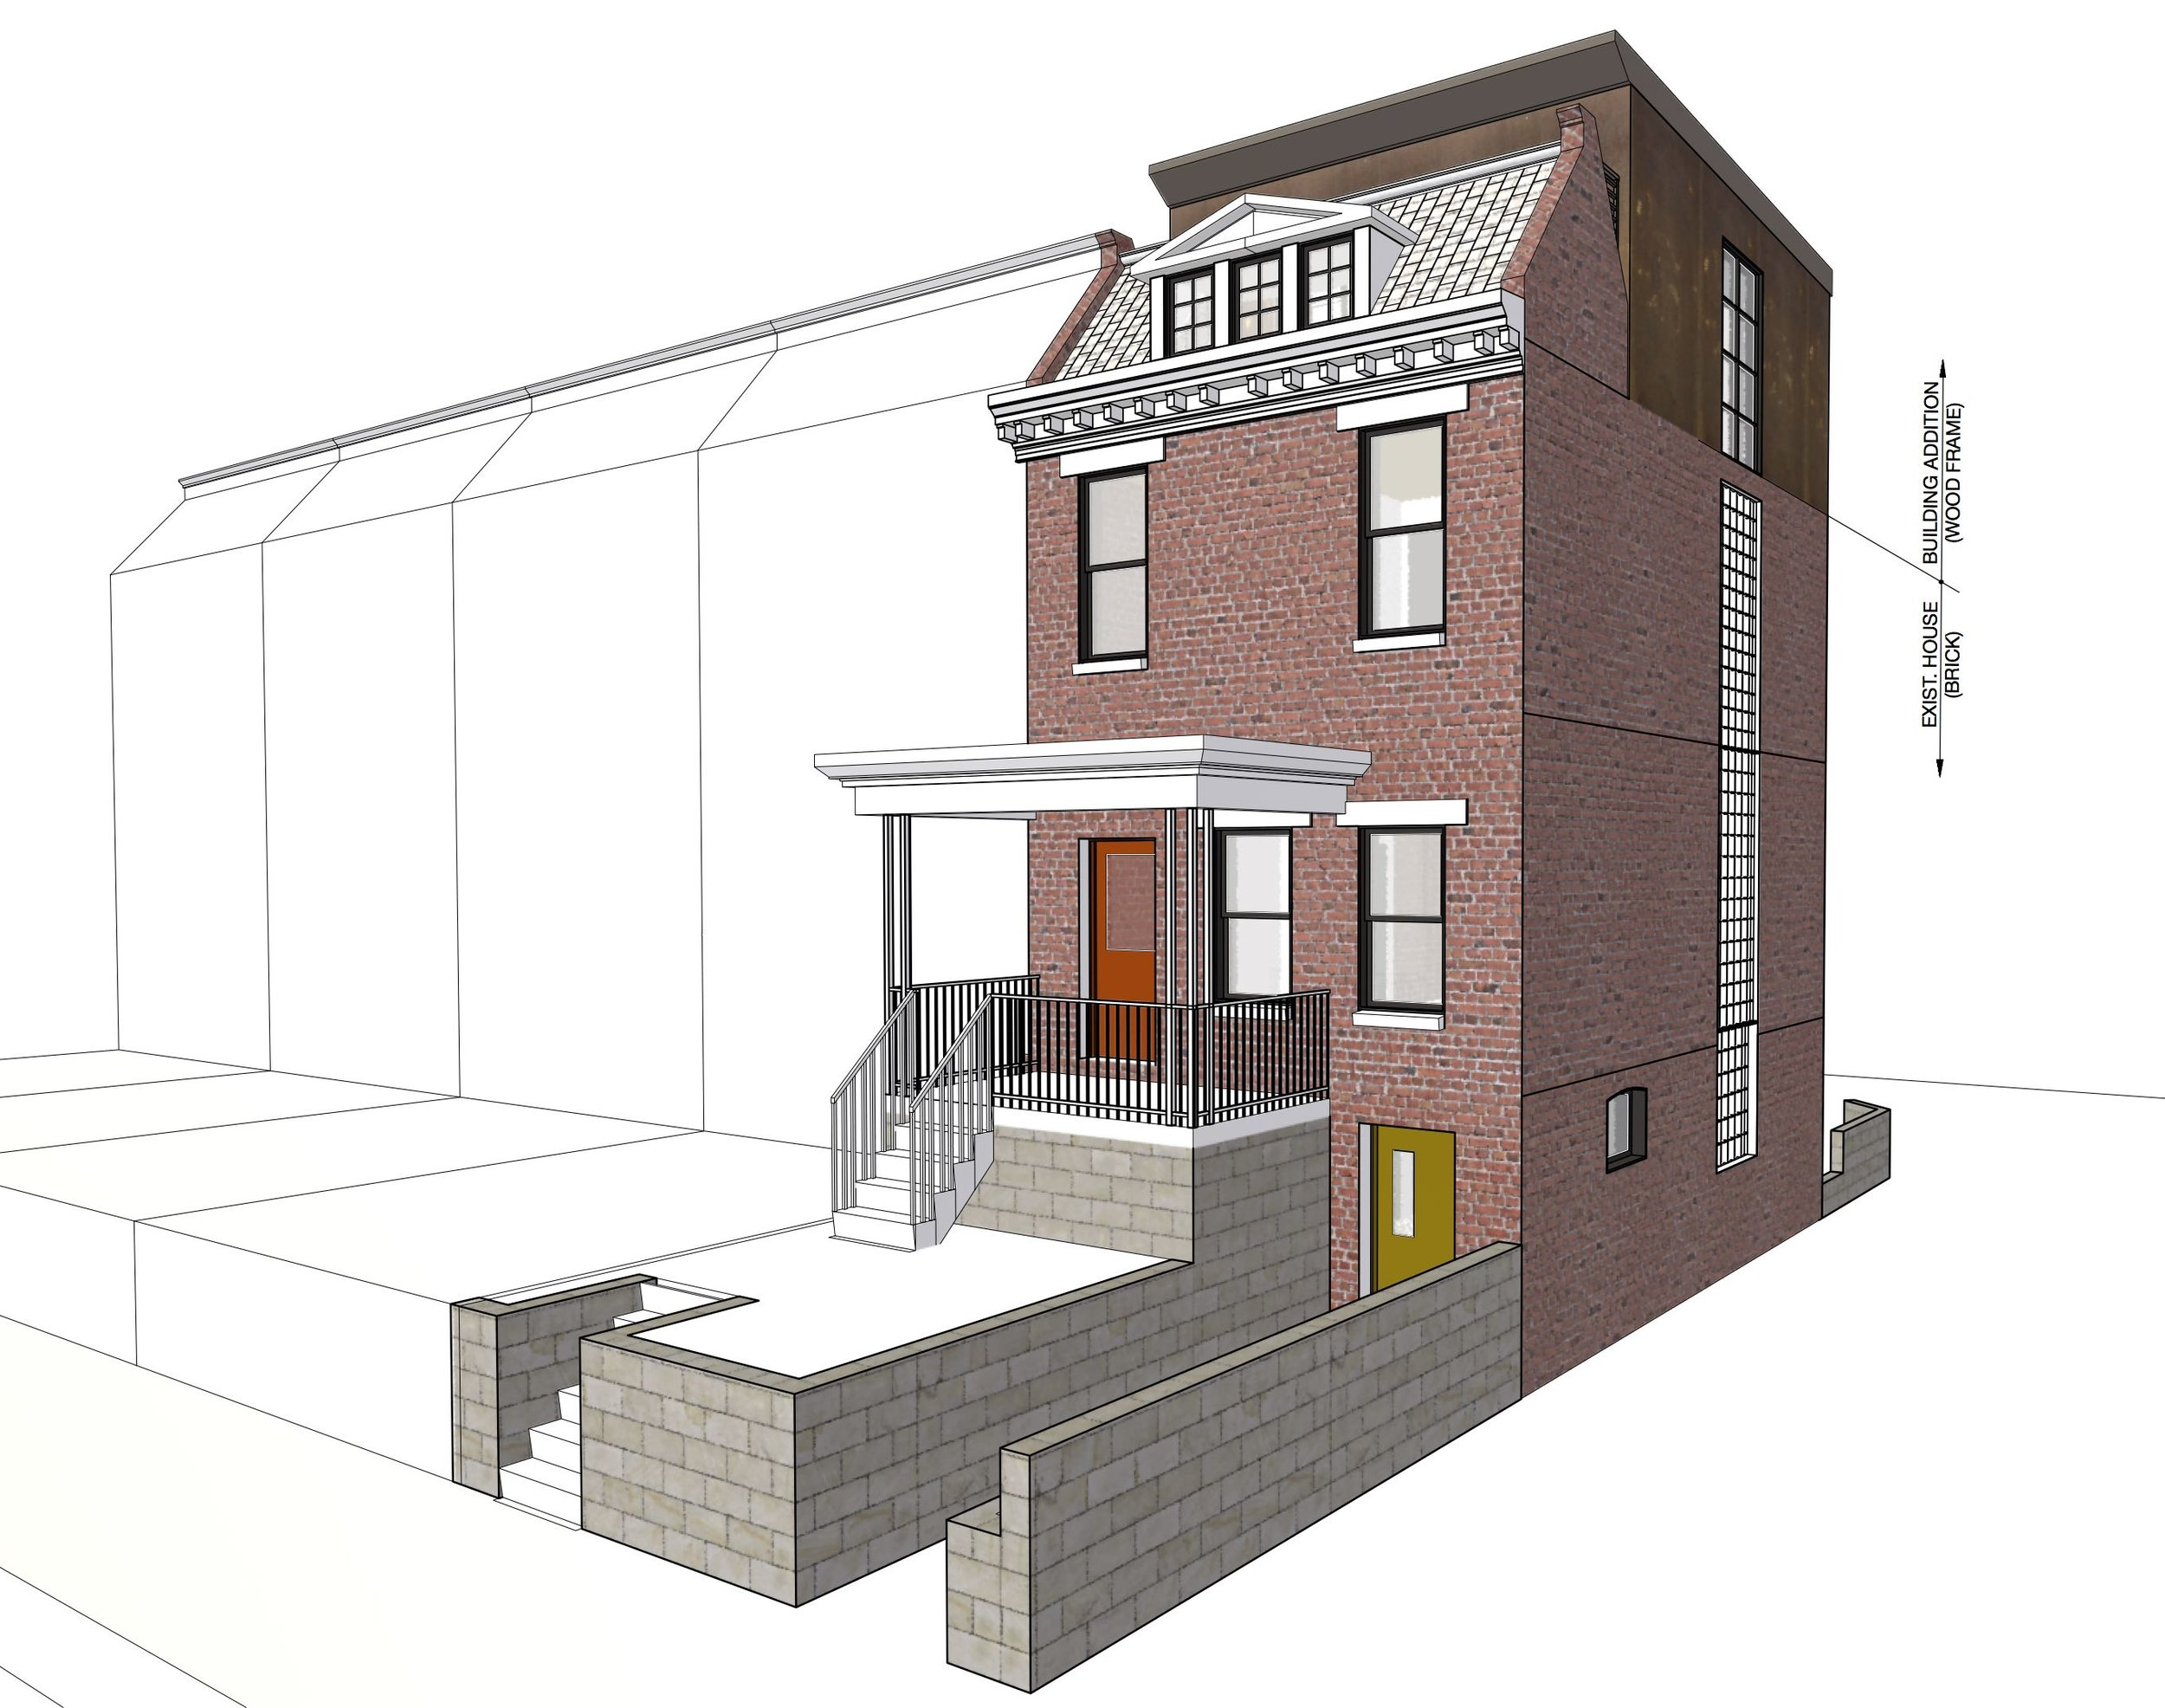 The proposed design, retains the original front facade.